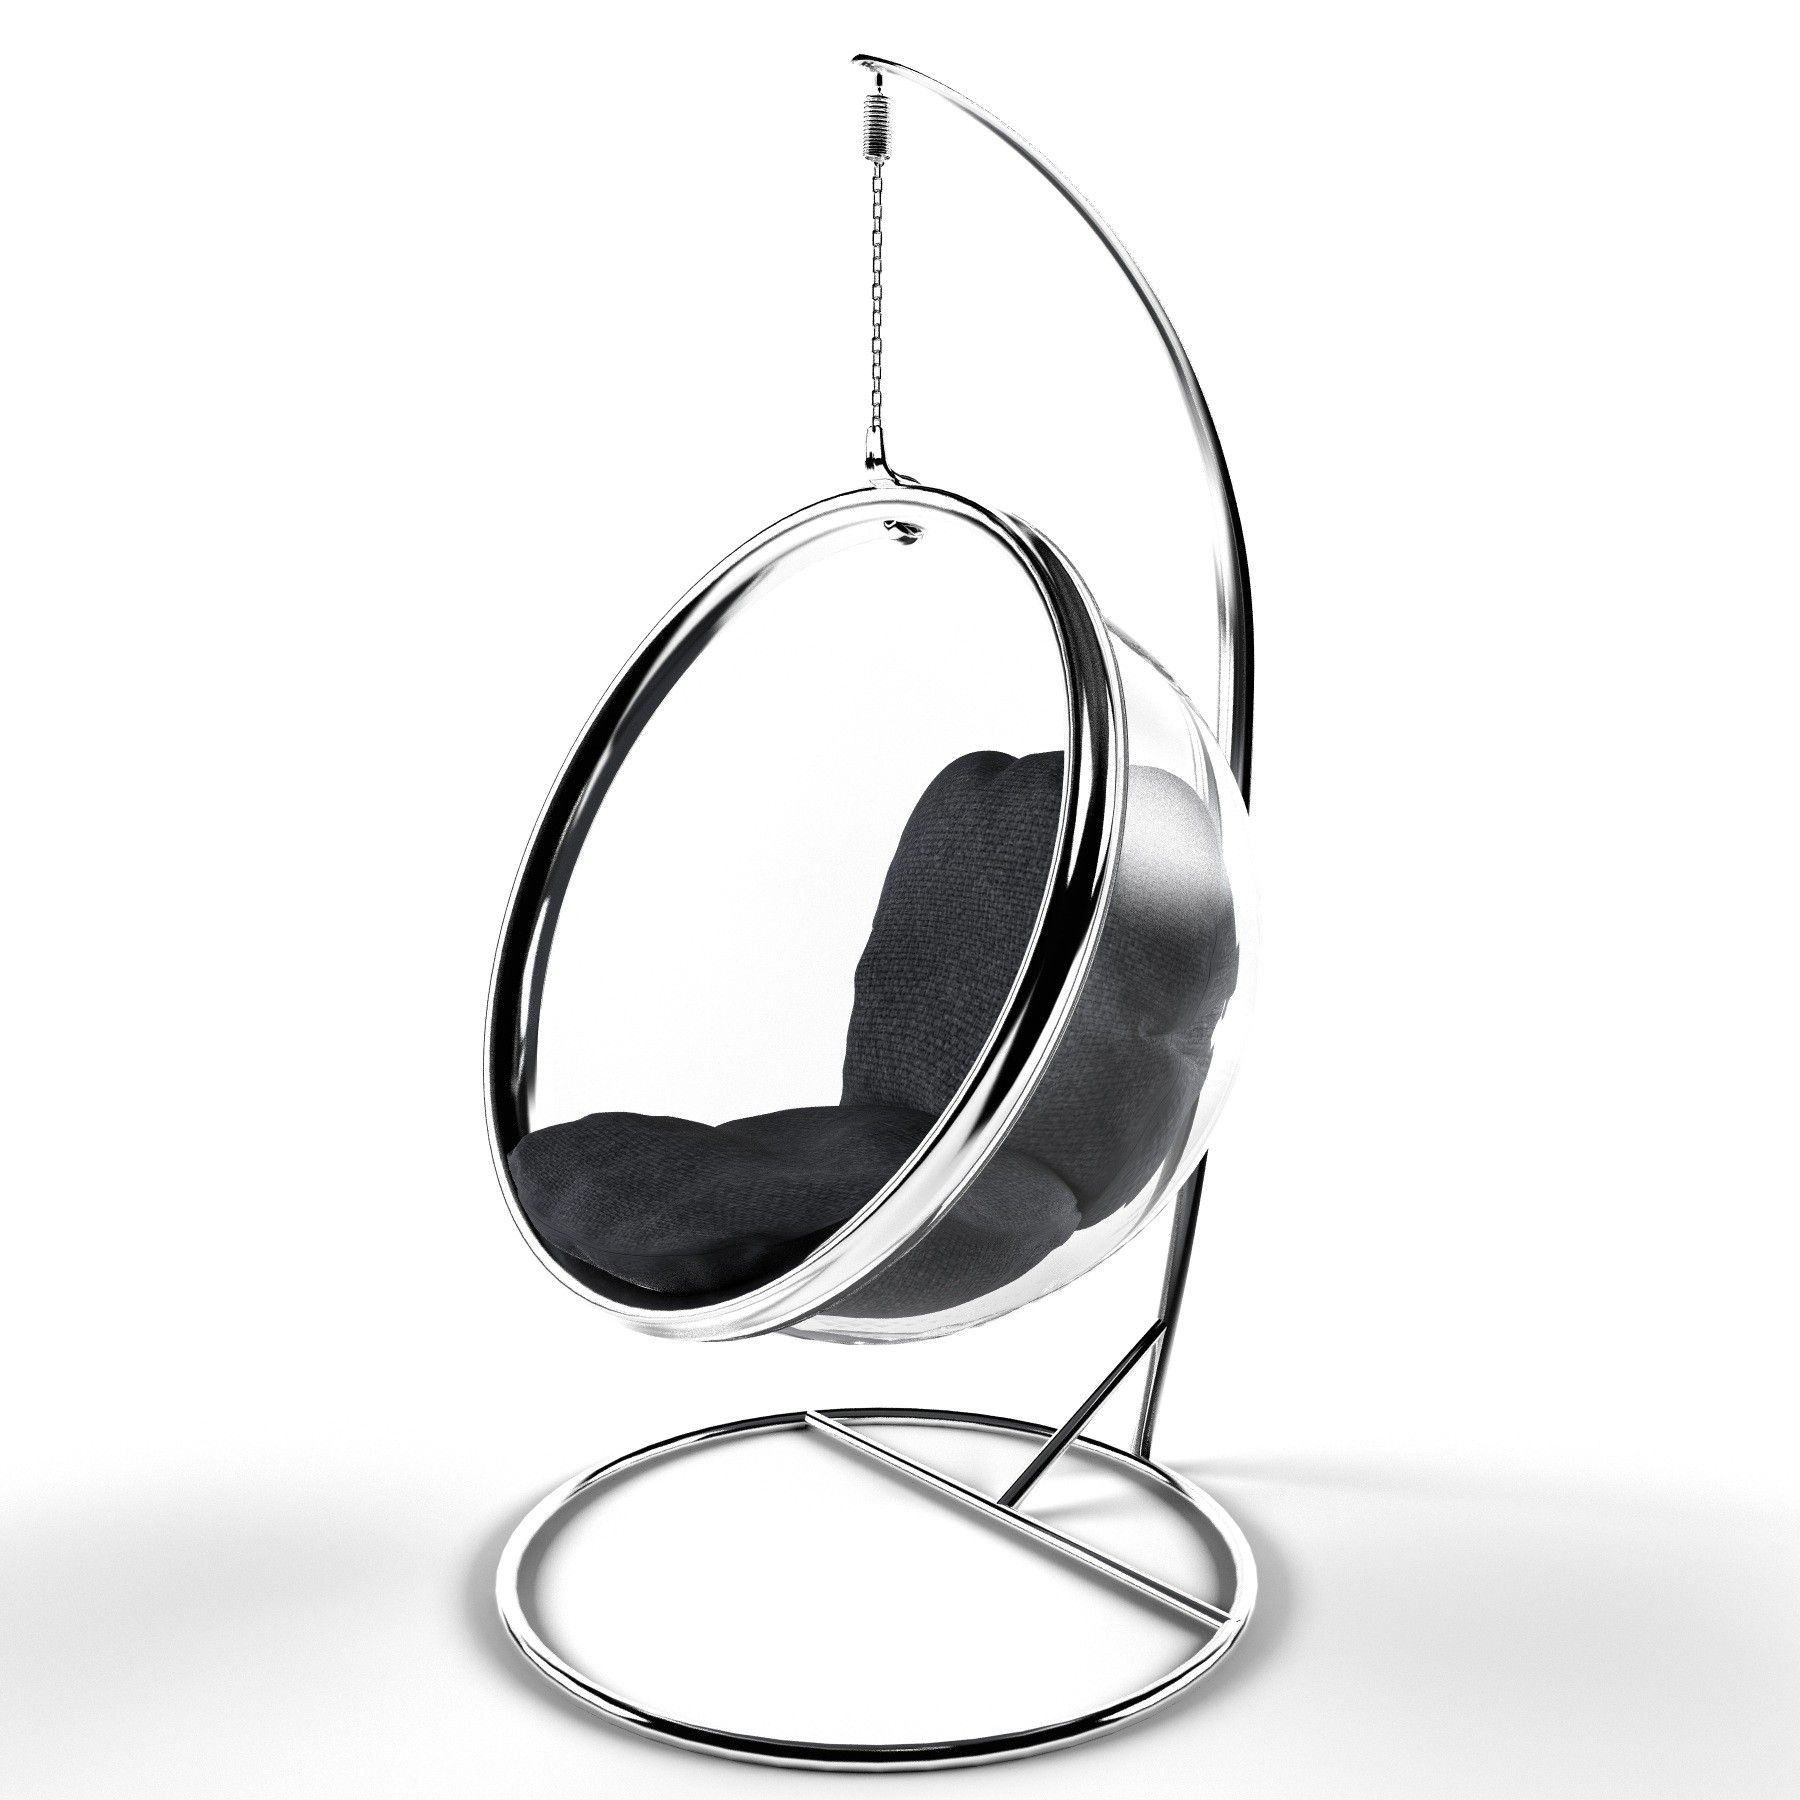 file arts coratifs aarnio paris mus wiki eero chair bubble des e d